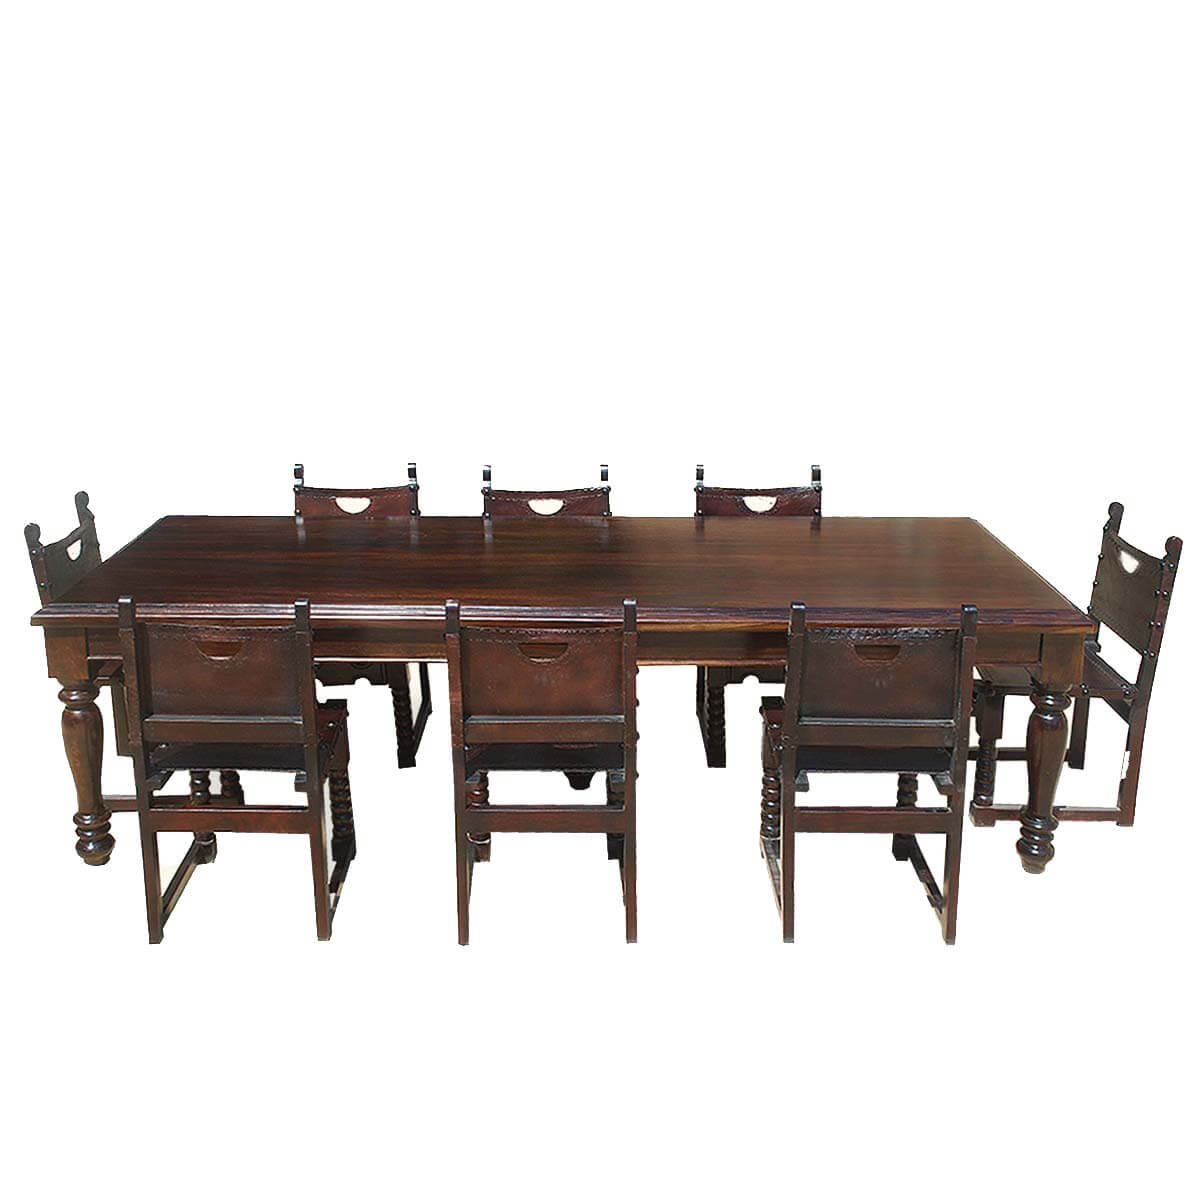 Large rustic solid wood dining room table w 8 leather for Rustic dining room sets